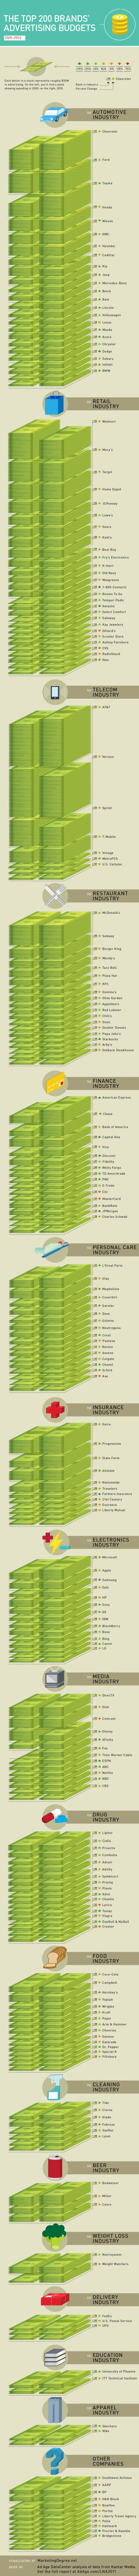 INFOGRAPHIC: Top 200 U.S. Brands Ranked by 2010 Ad Spend